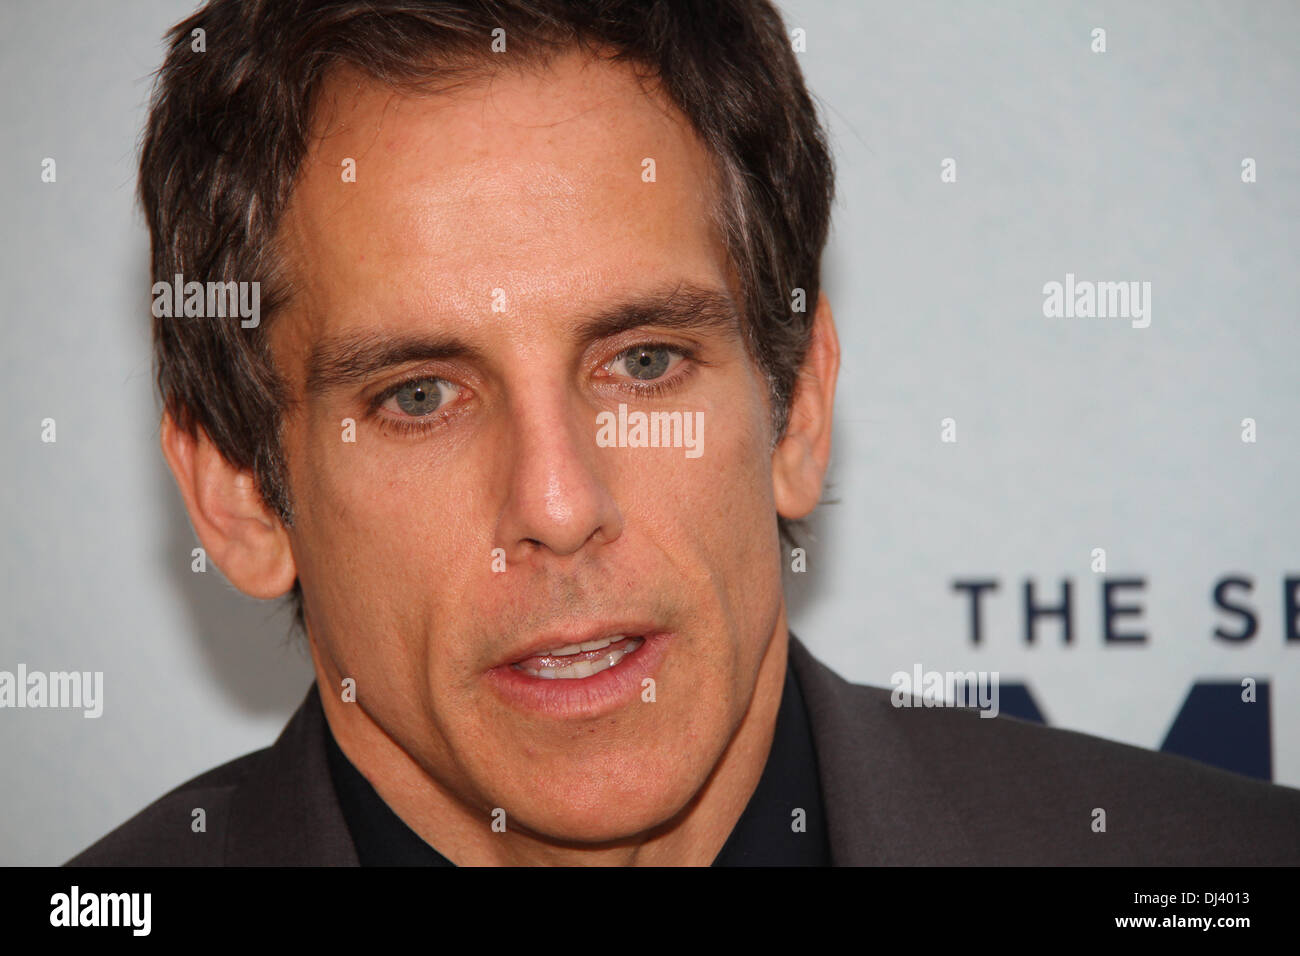 Sydney Entertainment Centre, Sydney, NSW, Australia. Ben Stiller (Zoolander, Meet The Parents) and Kristen Wiig (Bridesmaids) attended the red carpet Australian Premiere of The Secret Life of Walter Mitty. Pictured is Ben Stiller. Copyright Credit:  2013 Richard Milnes/Alamy Live News. - Stock Image